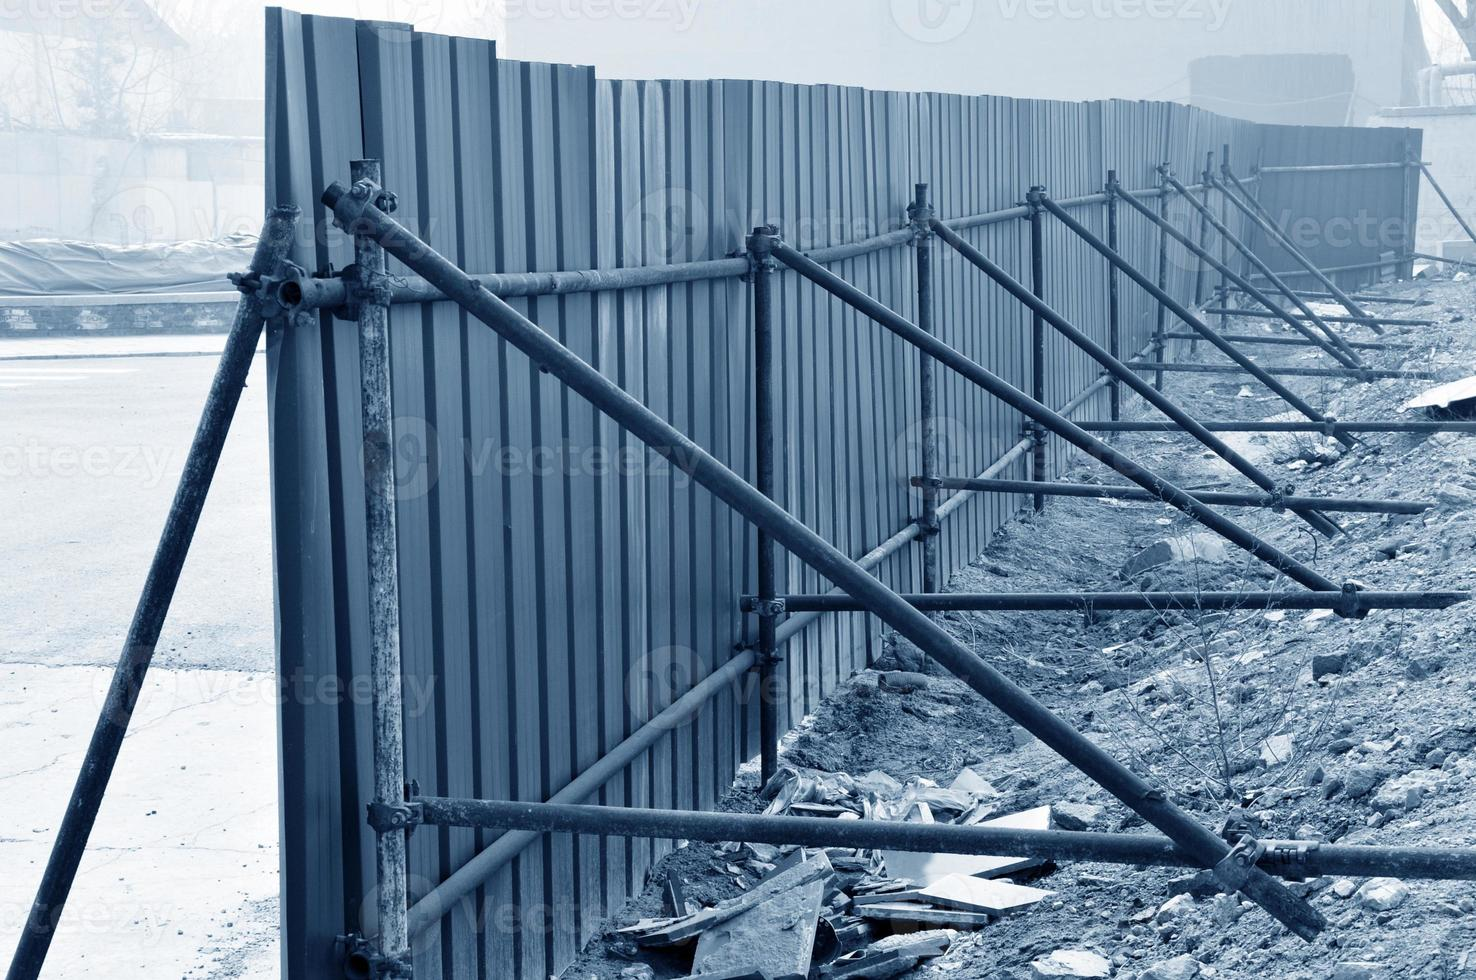 Simple fence, in the construction site photo